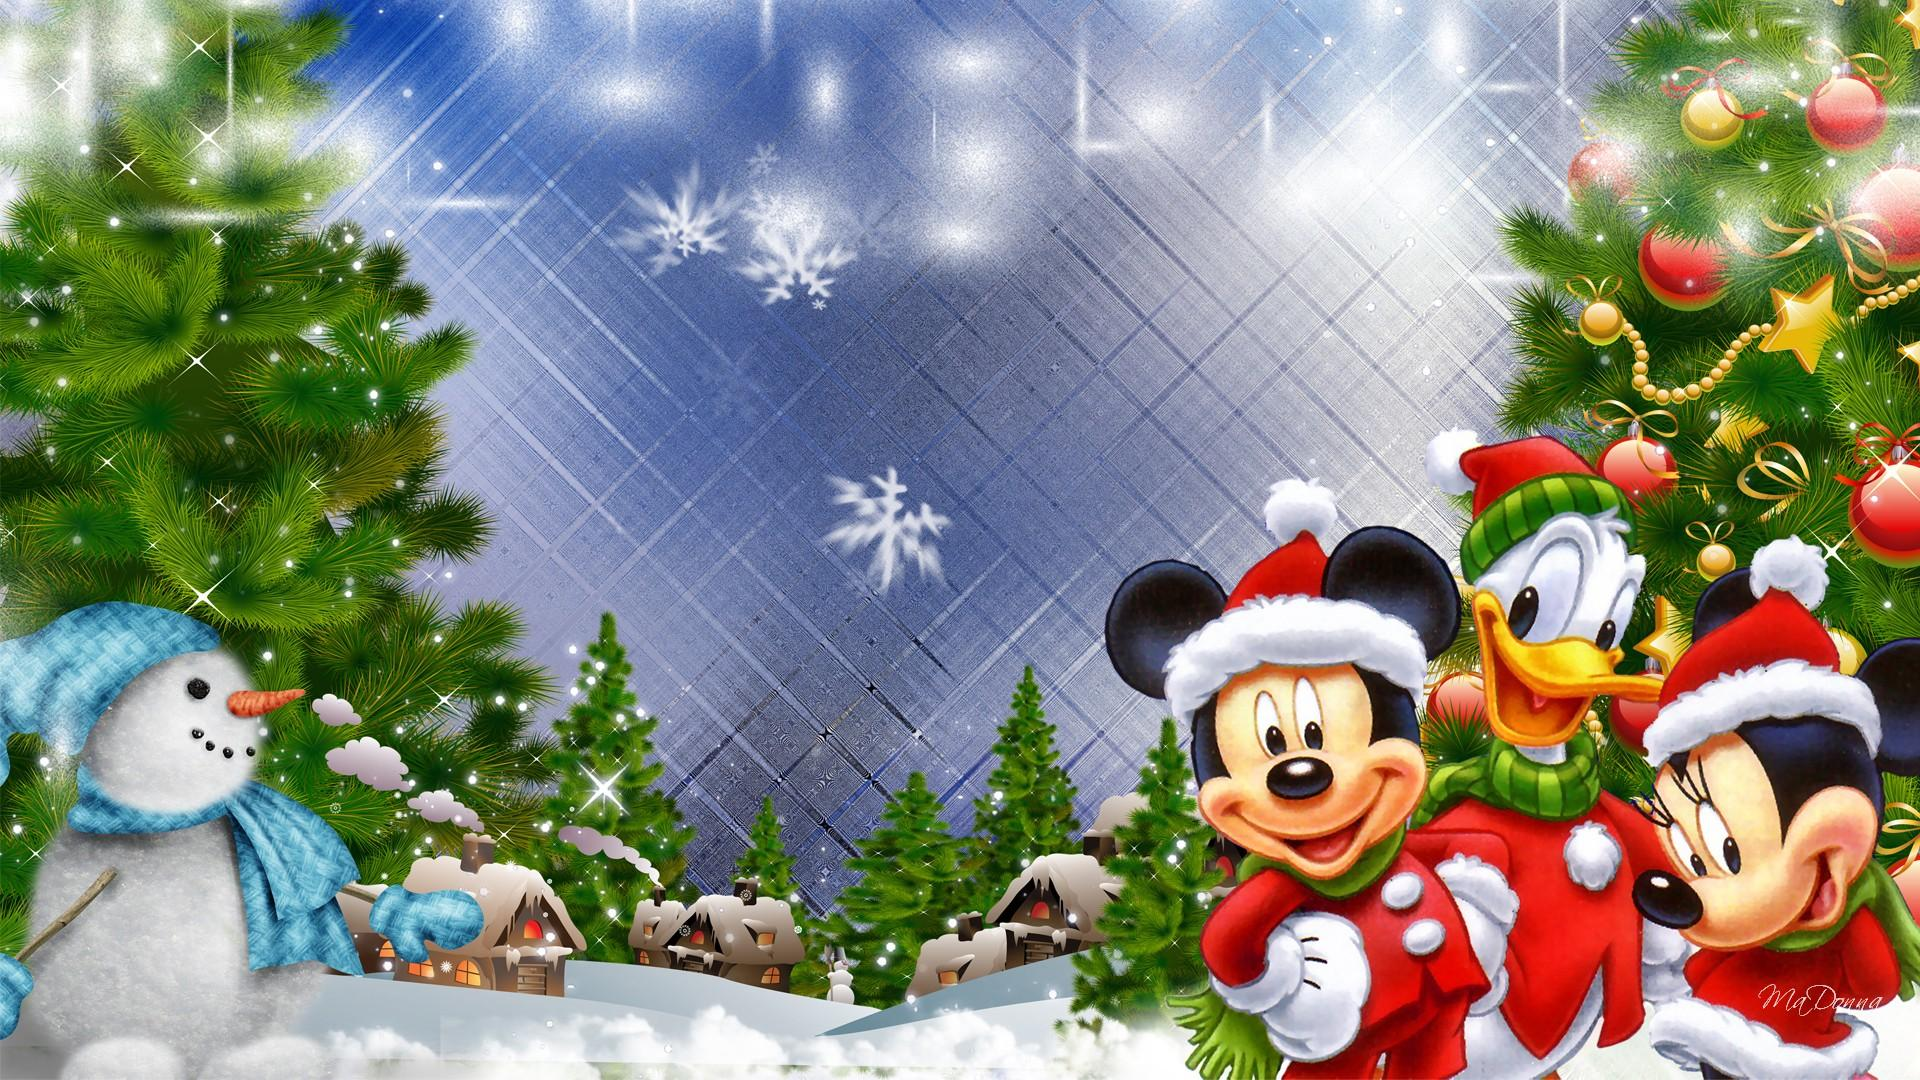 Best ideas about Mickey Mouse Wallpapers on Pinterest  Mickey 1920x1080